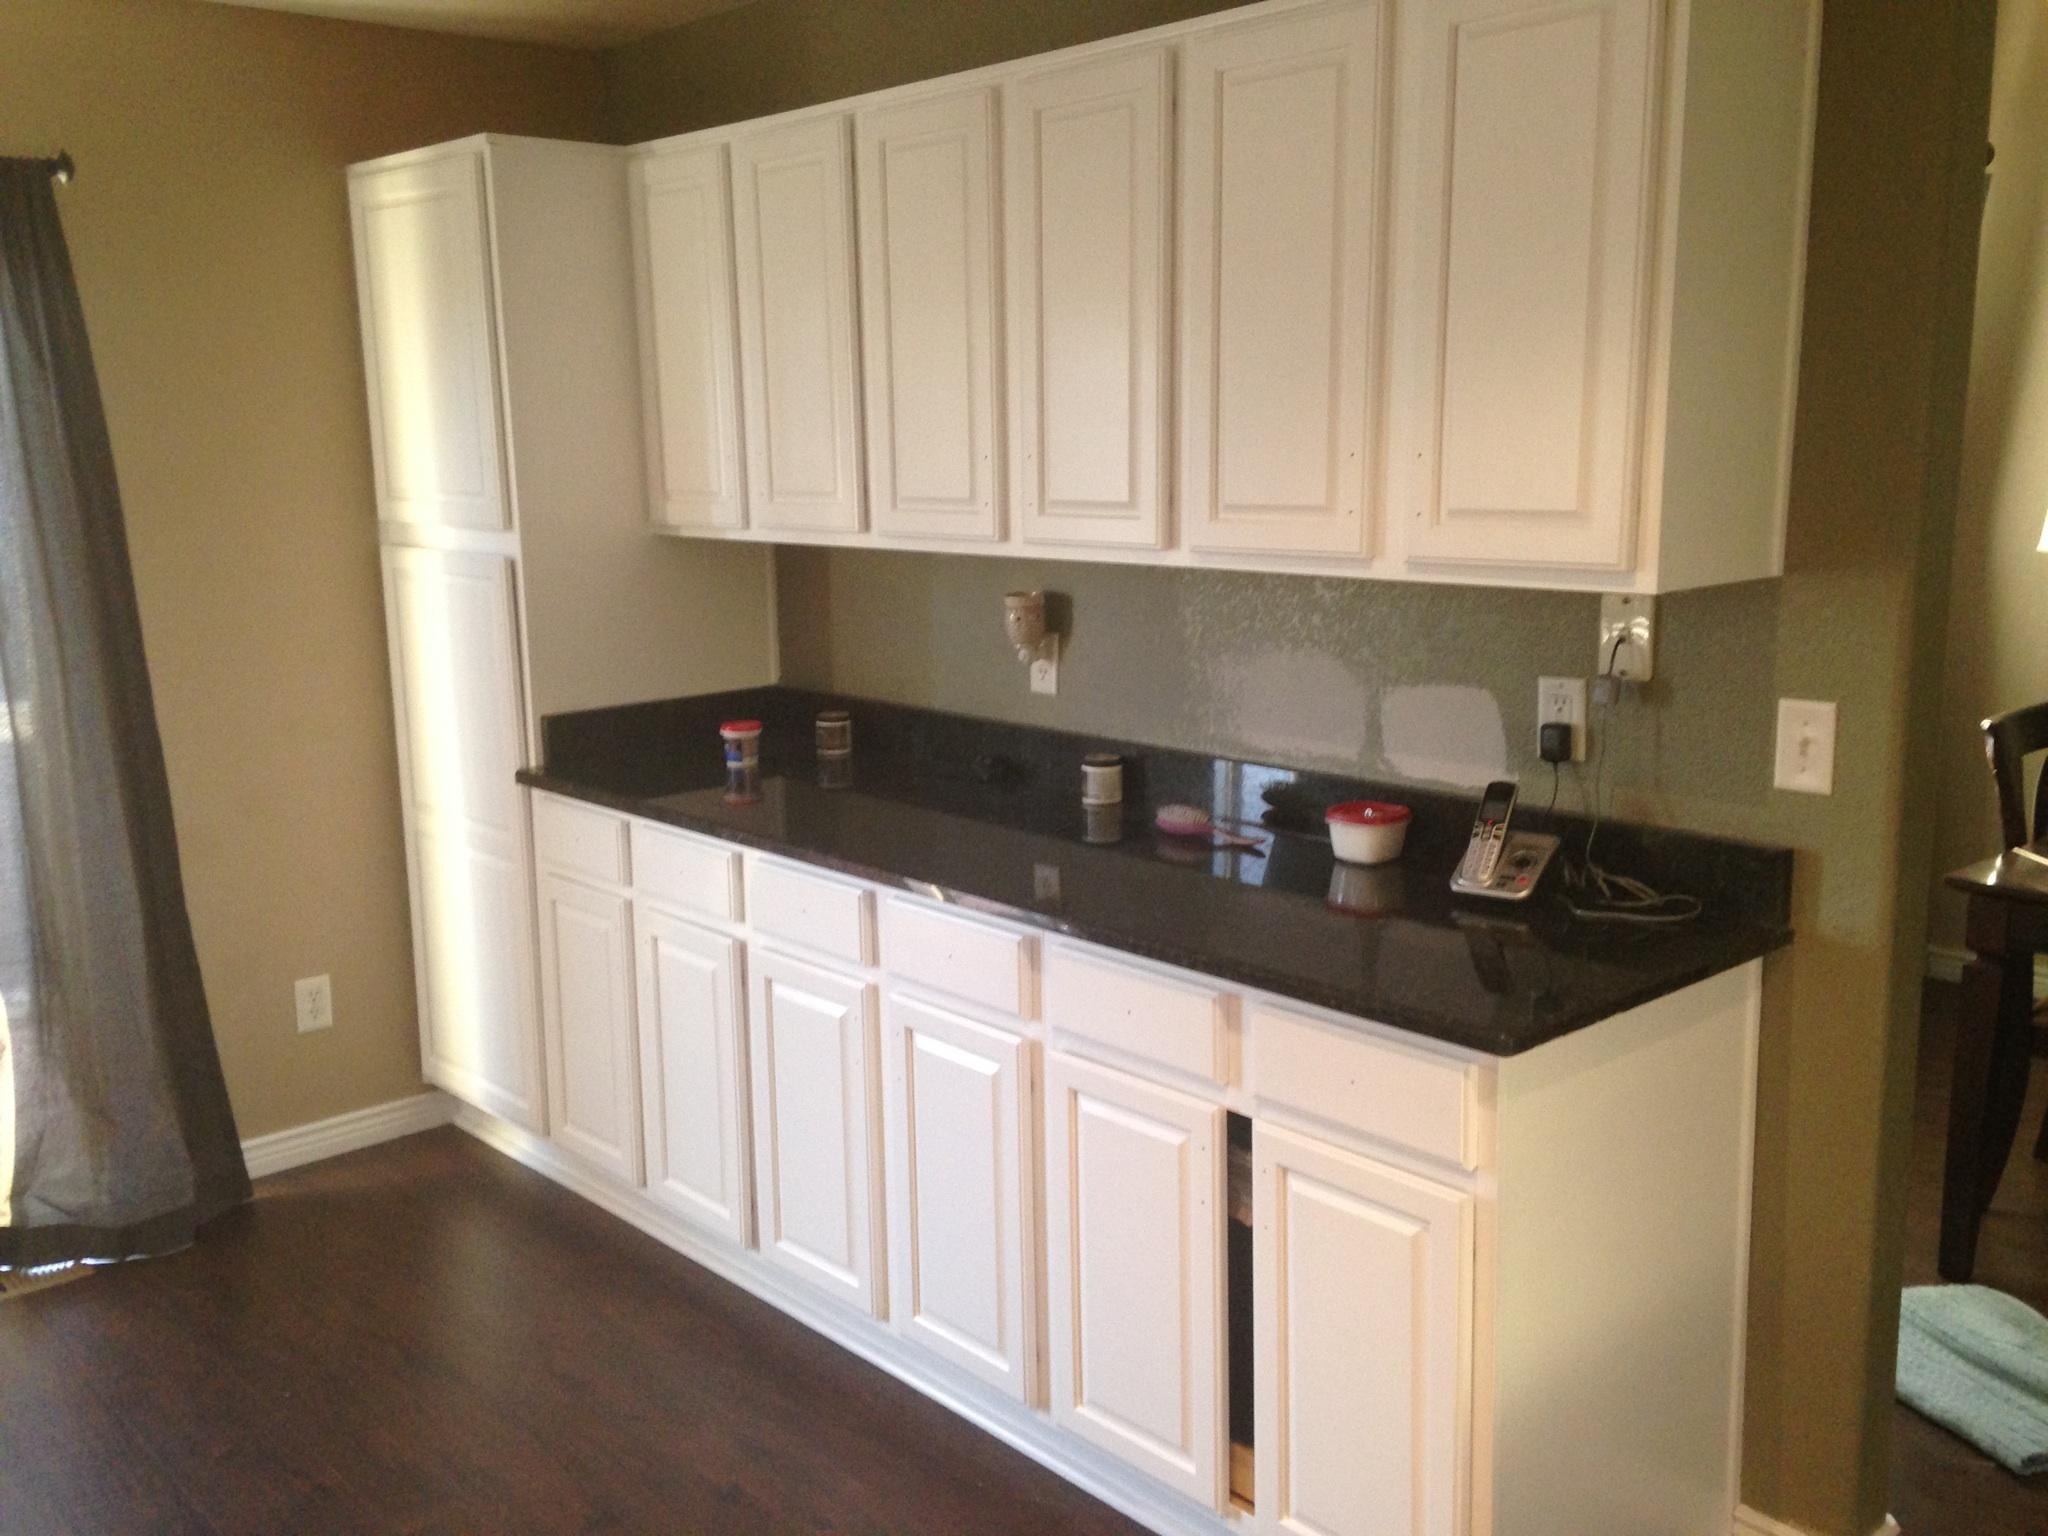 Cabinet Refinishing Denver | Painting kitchen cabinets Denver ...